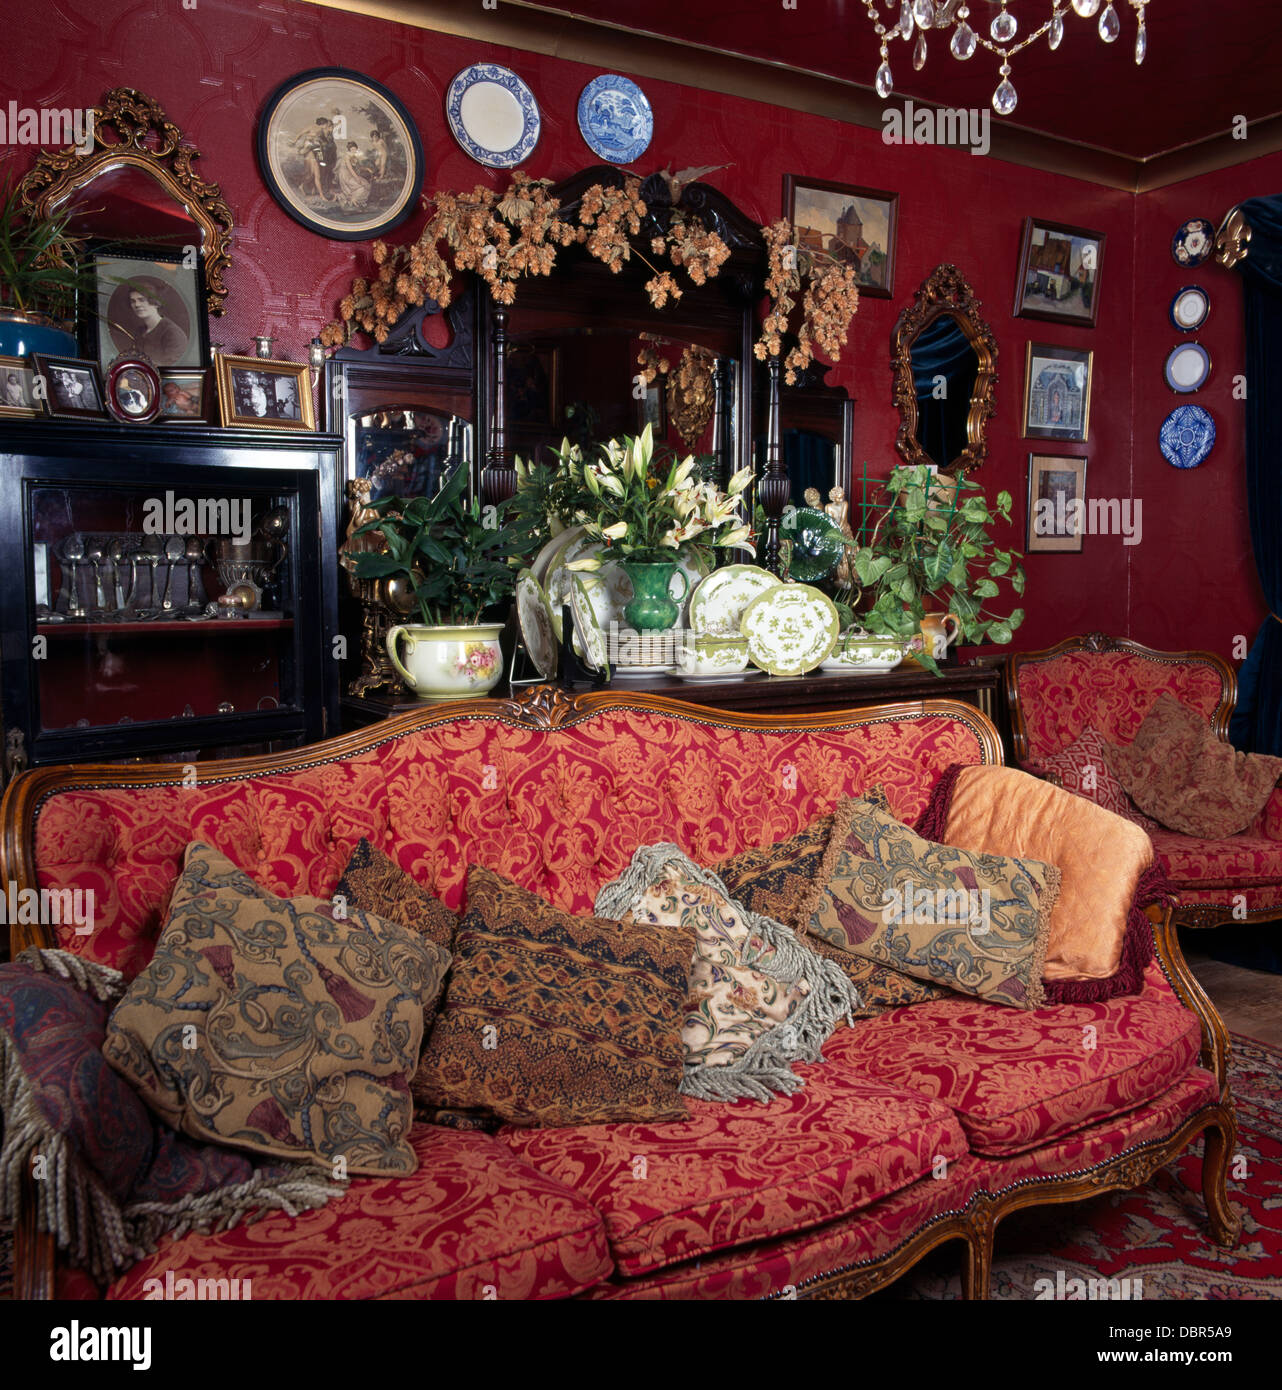 Red Patterned French Style Sofa Piled With Cushions In